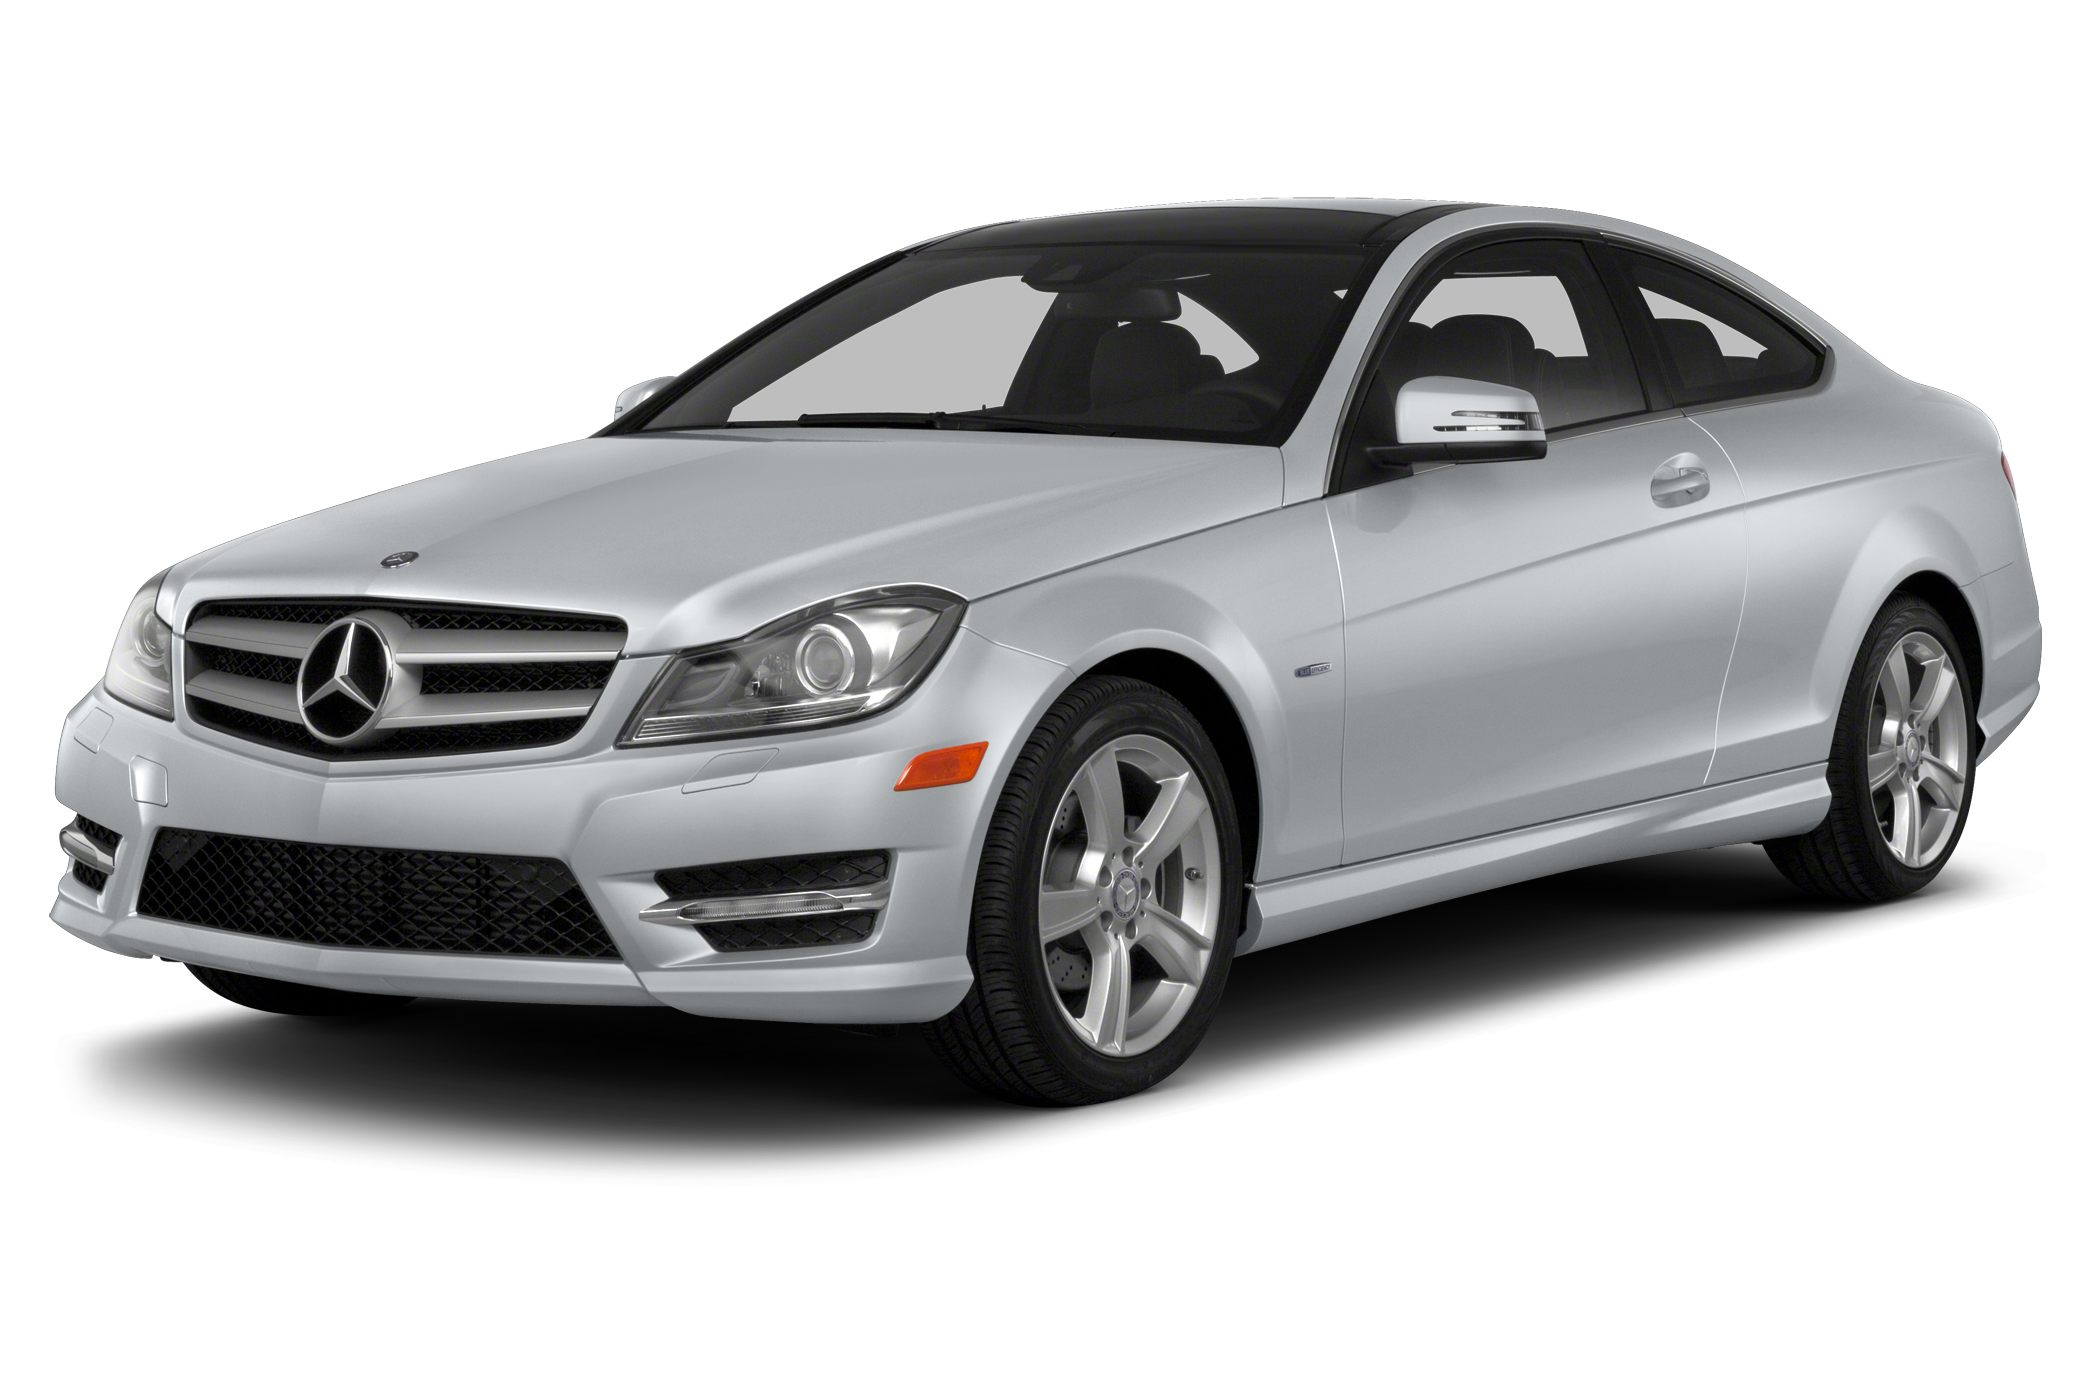 2013 Mercedes-Benz C-Class C250 Coupe for sale in Tulsa for $29,998 with 16,621 miles